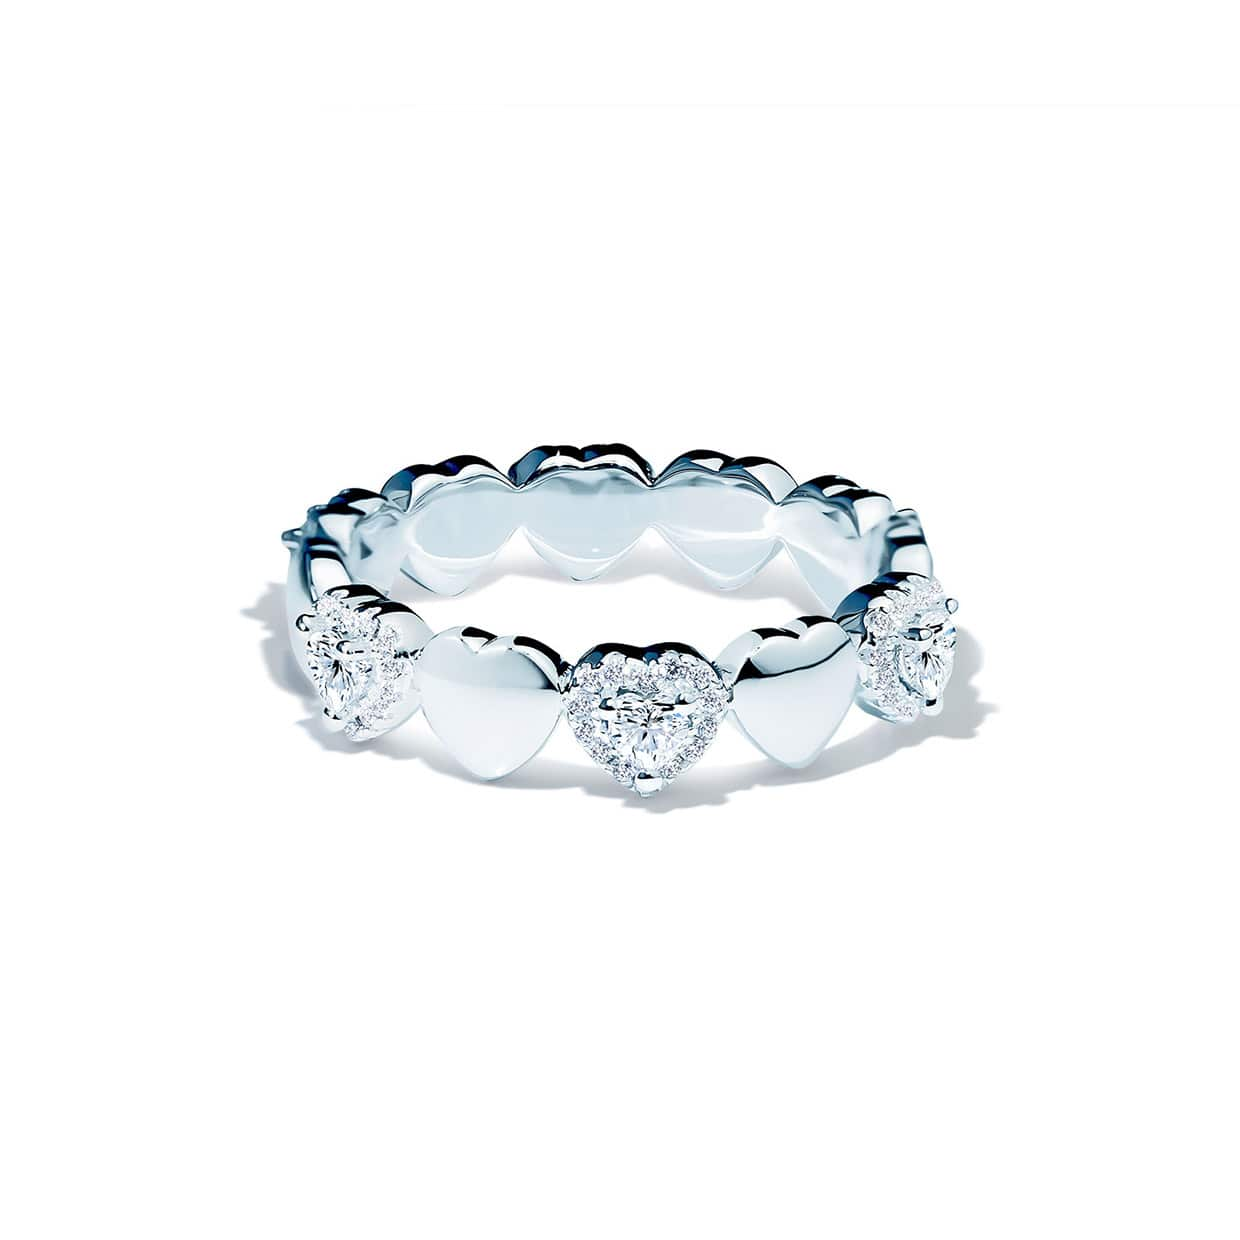 Loving Heart Silver Band Ring - Abelstedt